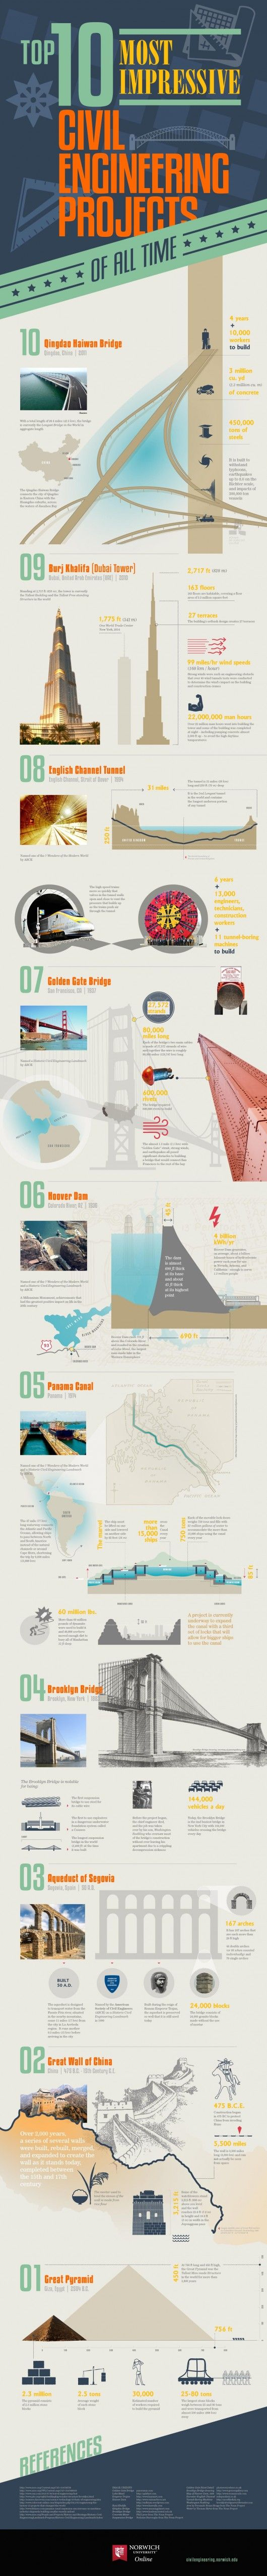 Courtesy of Andrew Deen, fantastic design, interesting facts.